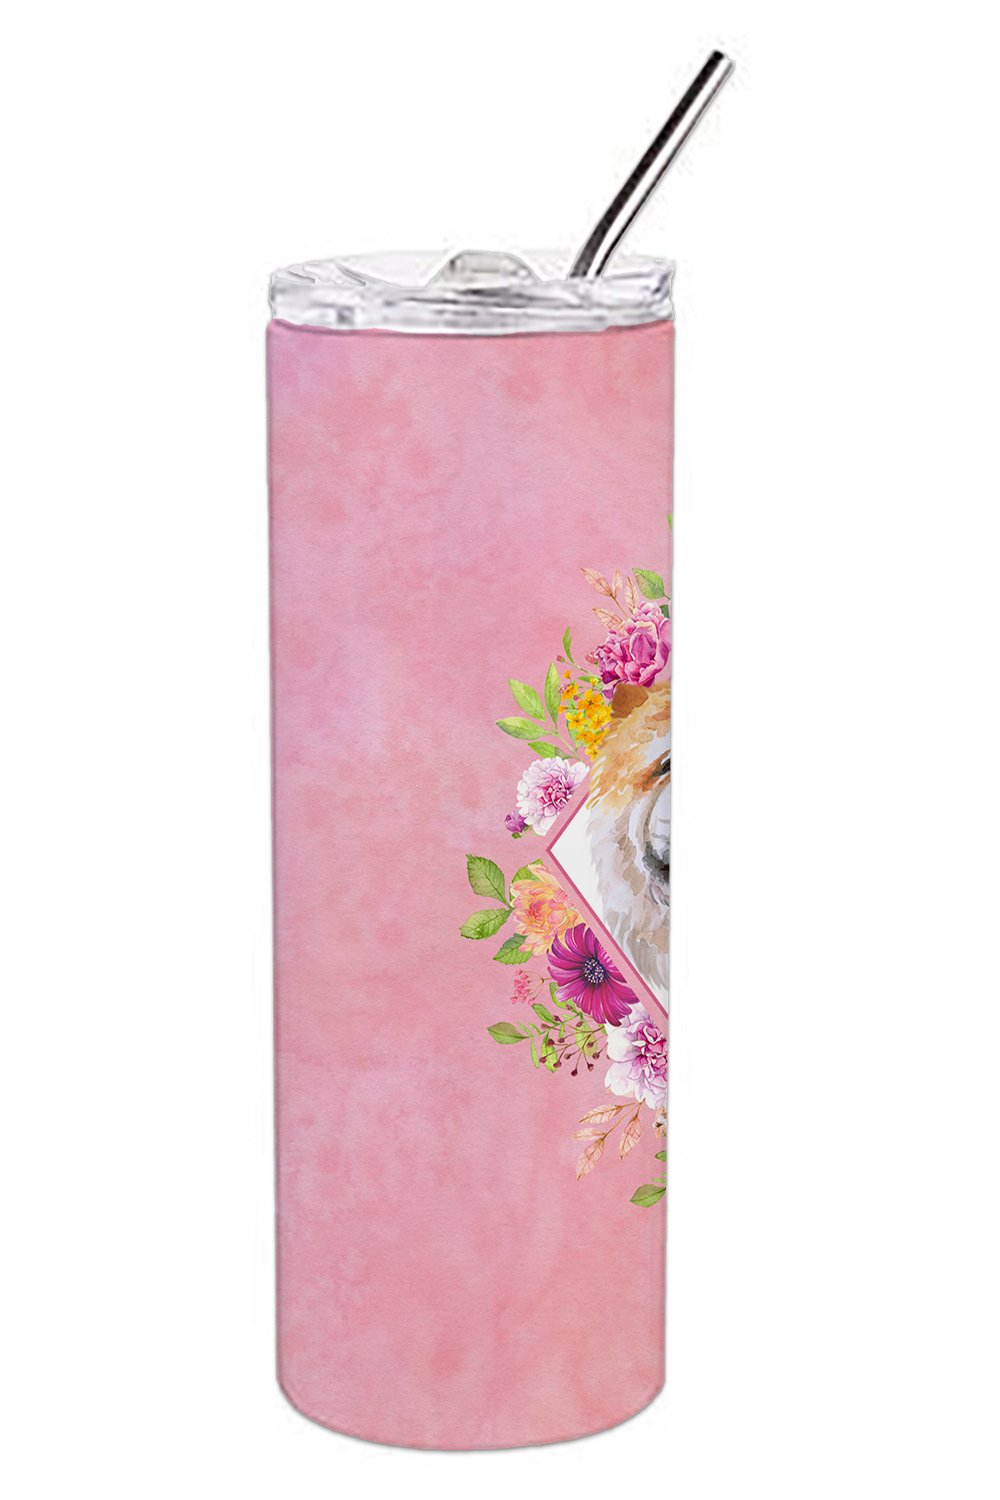 Chow Chow #2 Pink Flowers Double Walled Stainless Steel 20 oz Skinny Tumbler CK4132TBL20 by Caroline's Treasures